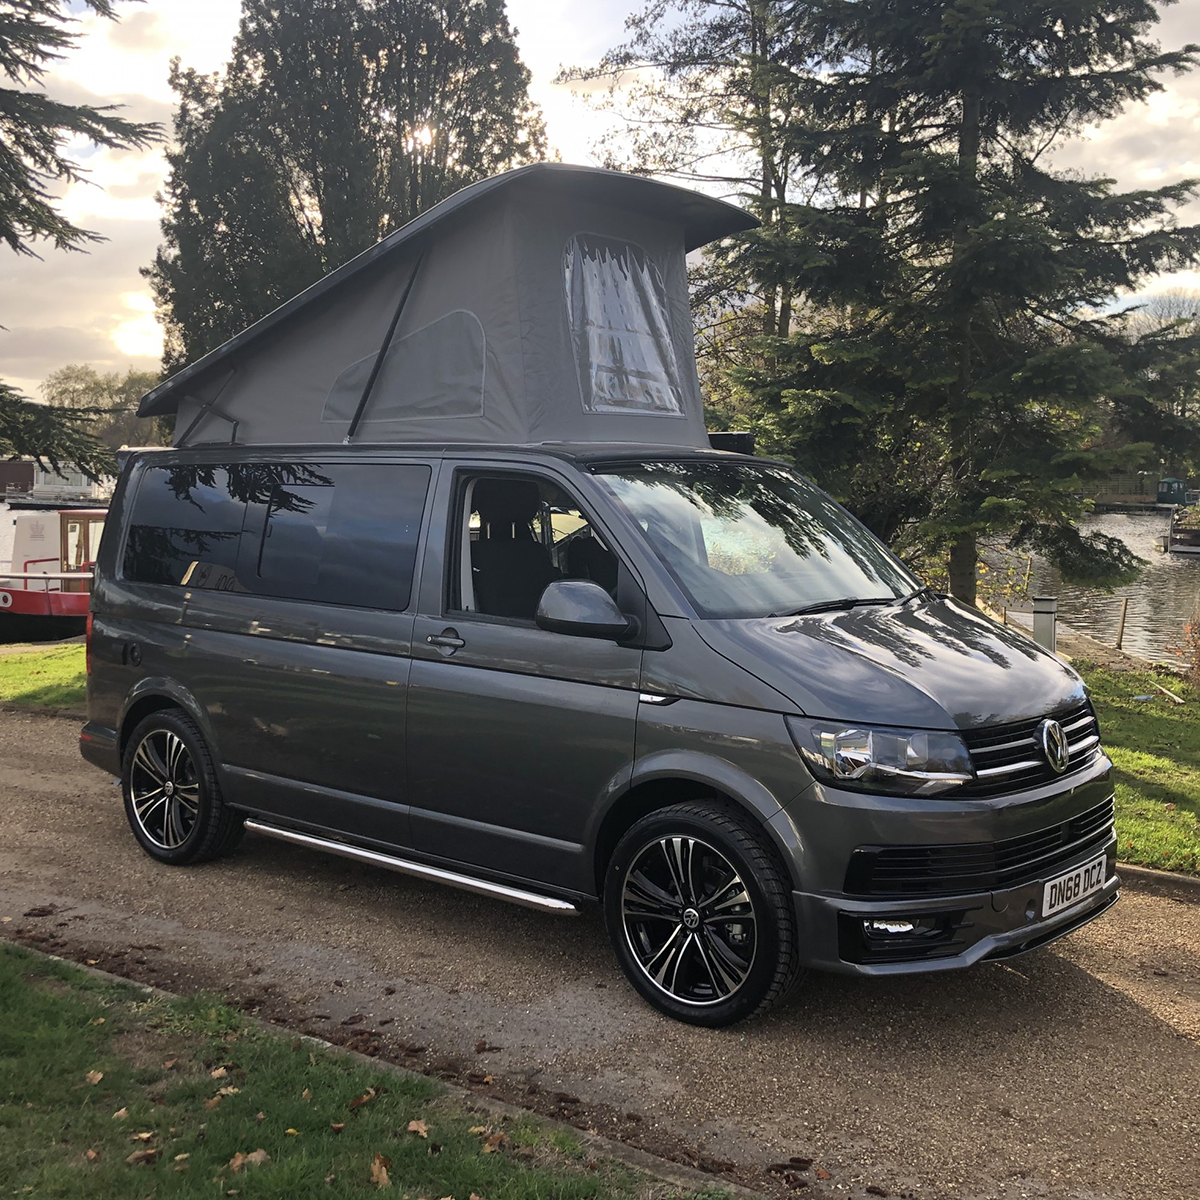 Order for March 2019, 19 Reg, T6 Highline with Brand New Campervan Conversion